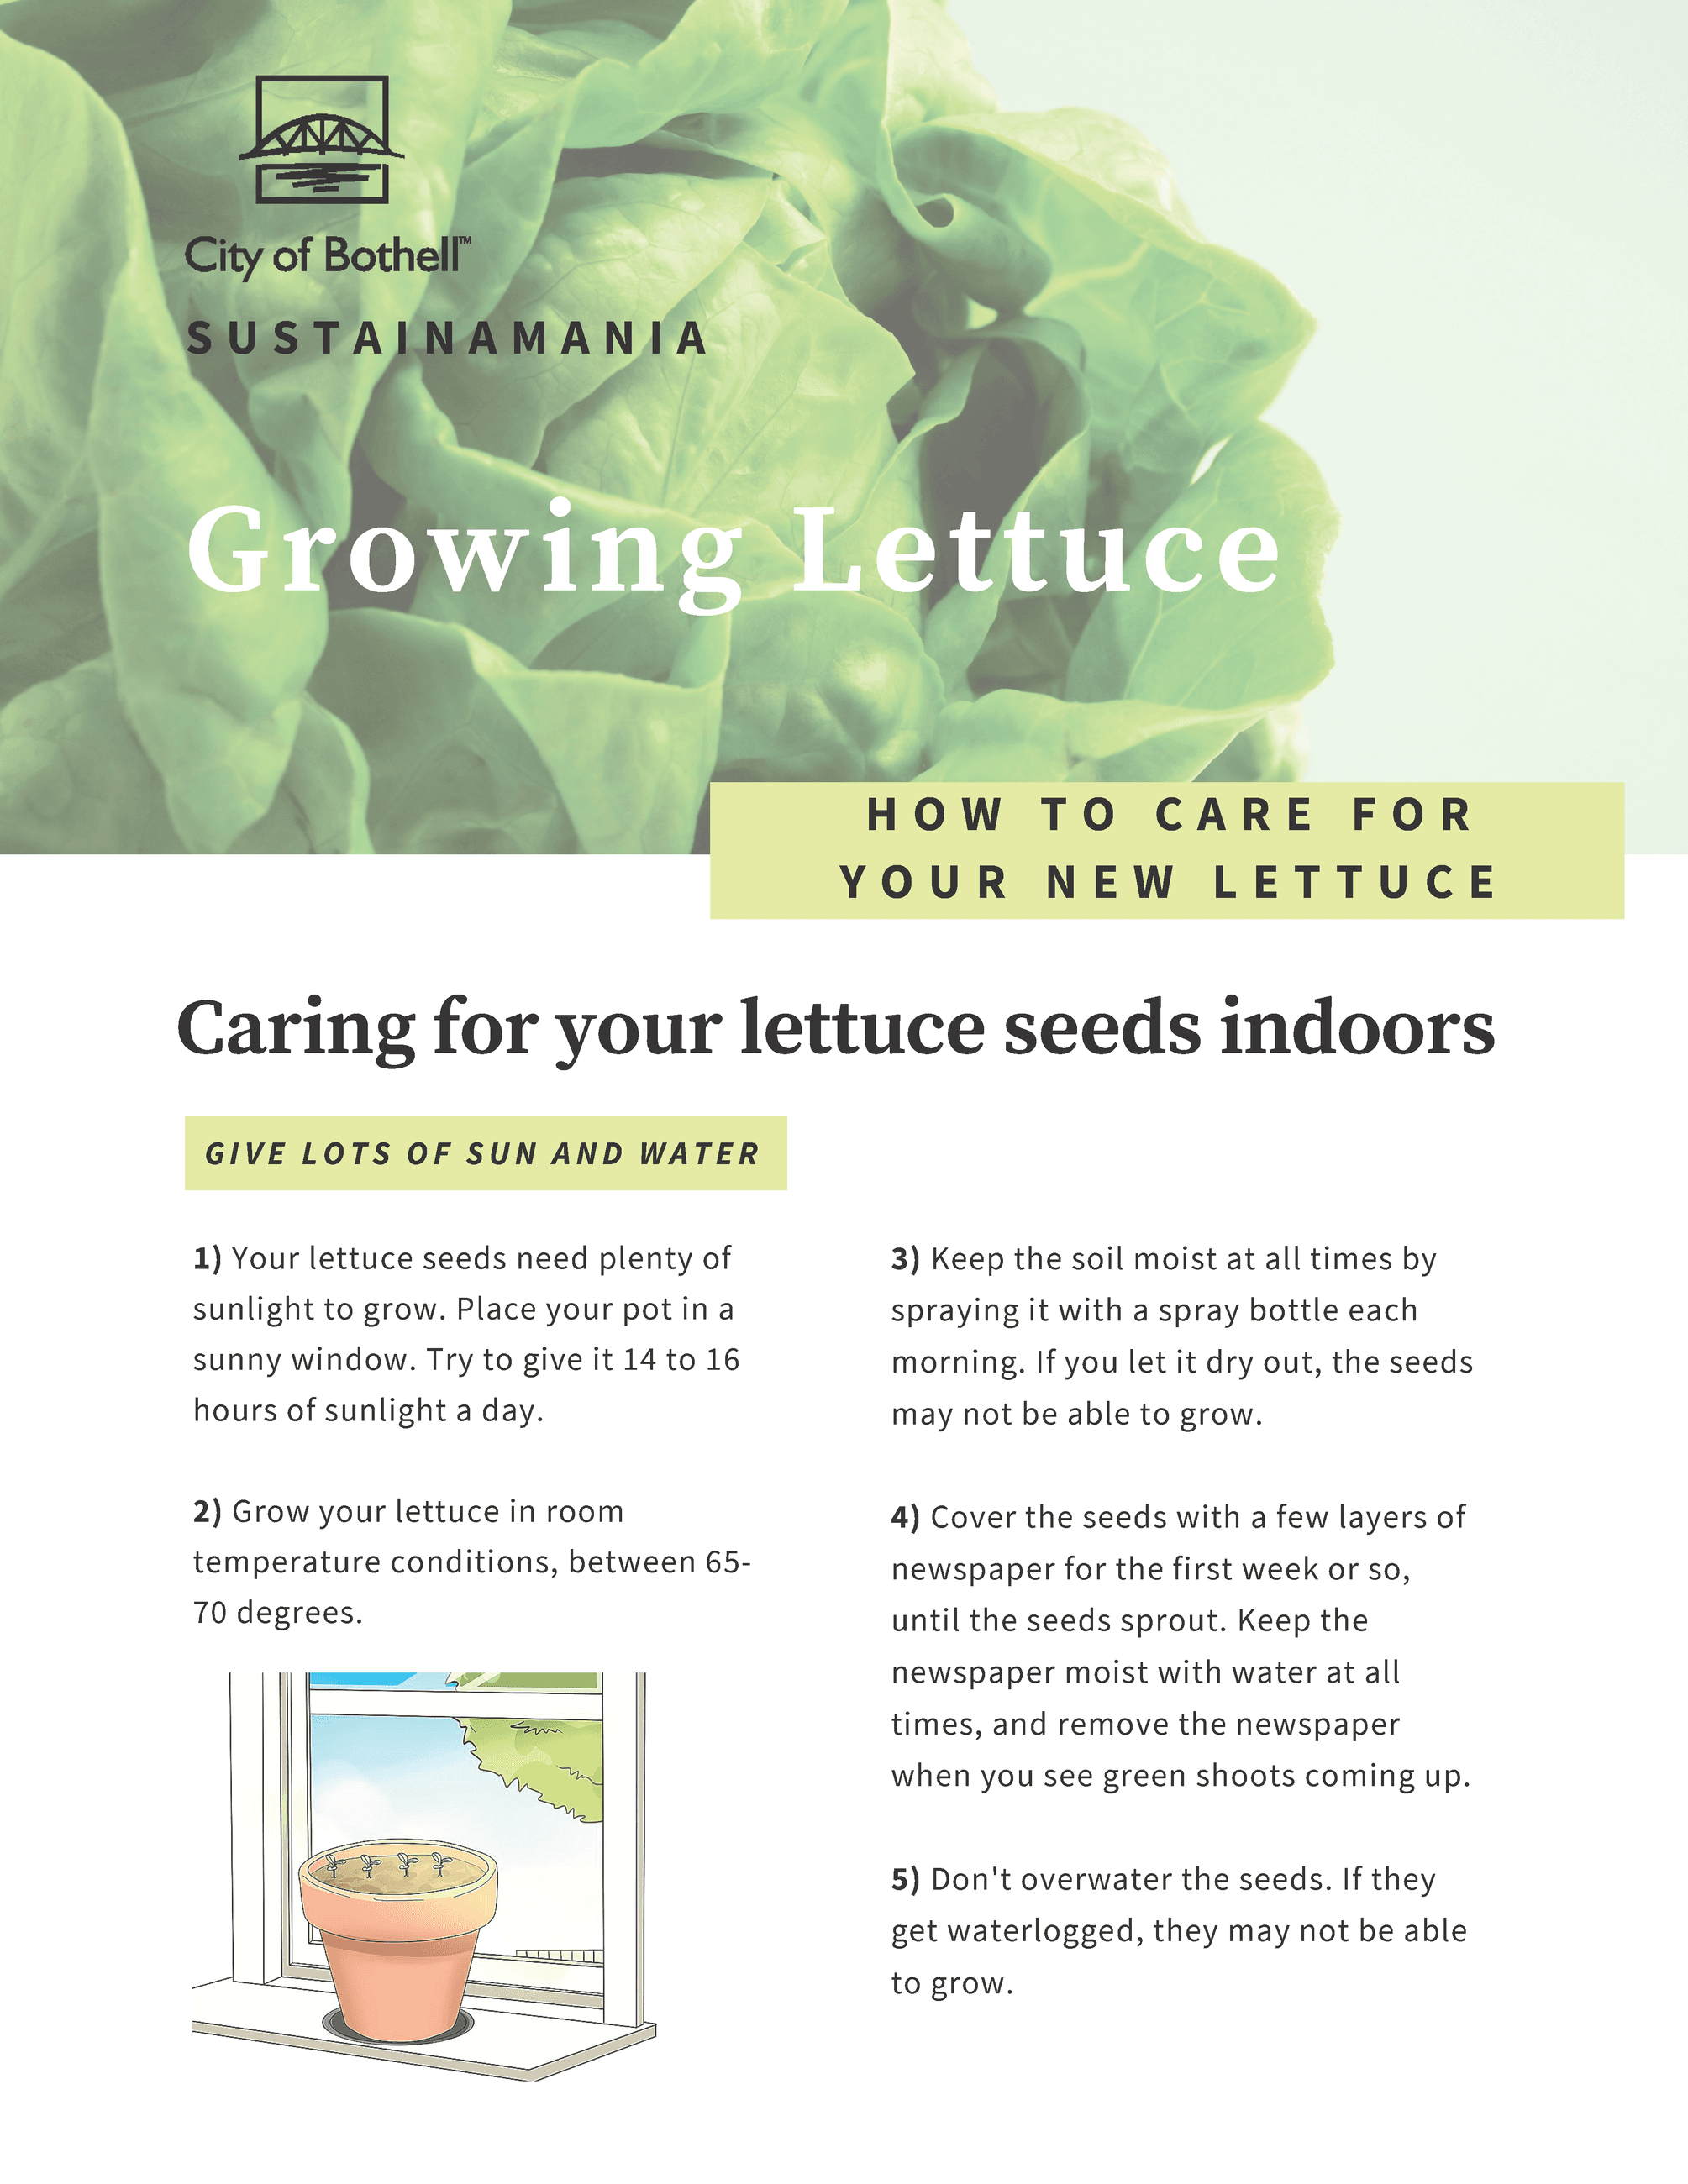 Growing Lettuce Sustainamania